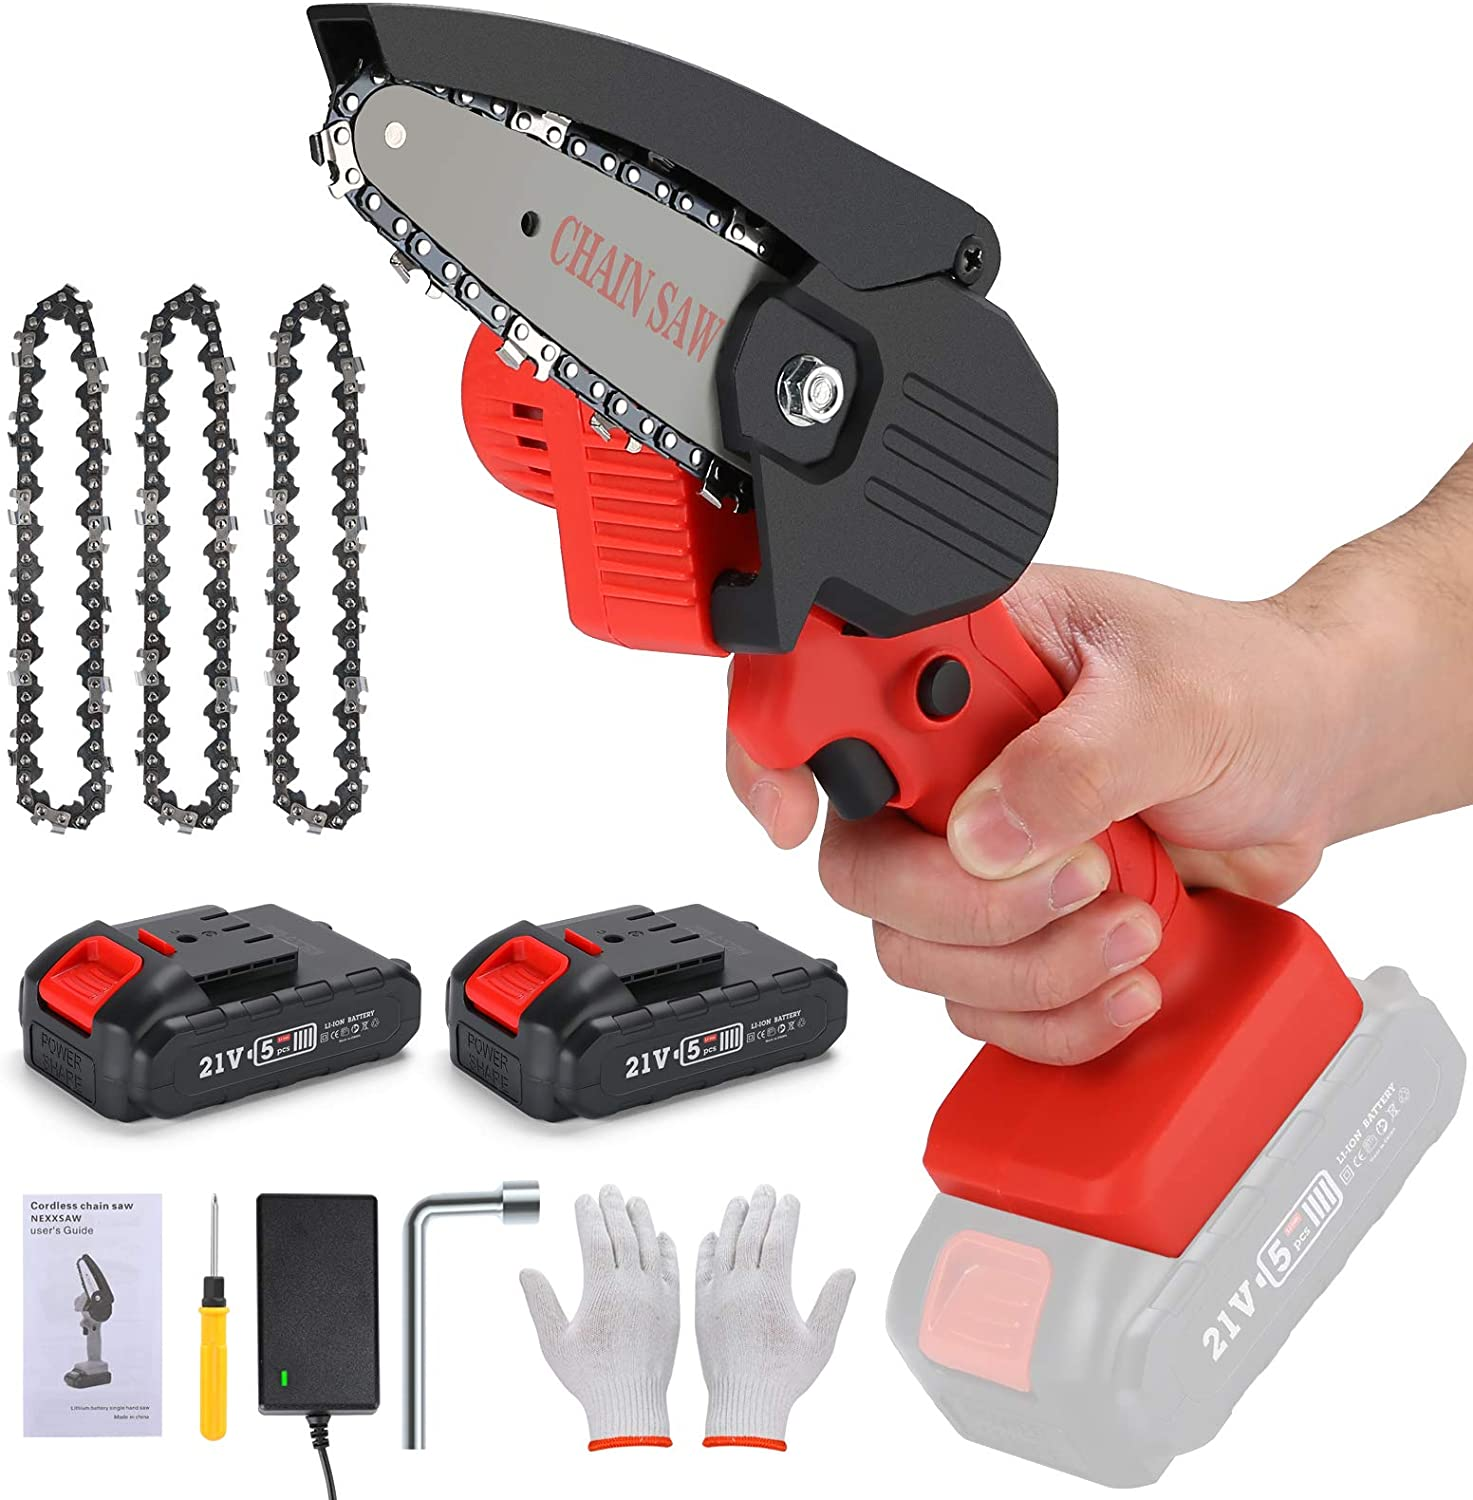 Mowers & Outdoor Power Tools Chainsaws One-Hand Pruning Shears ...